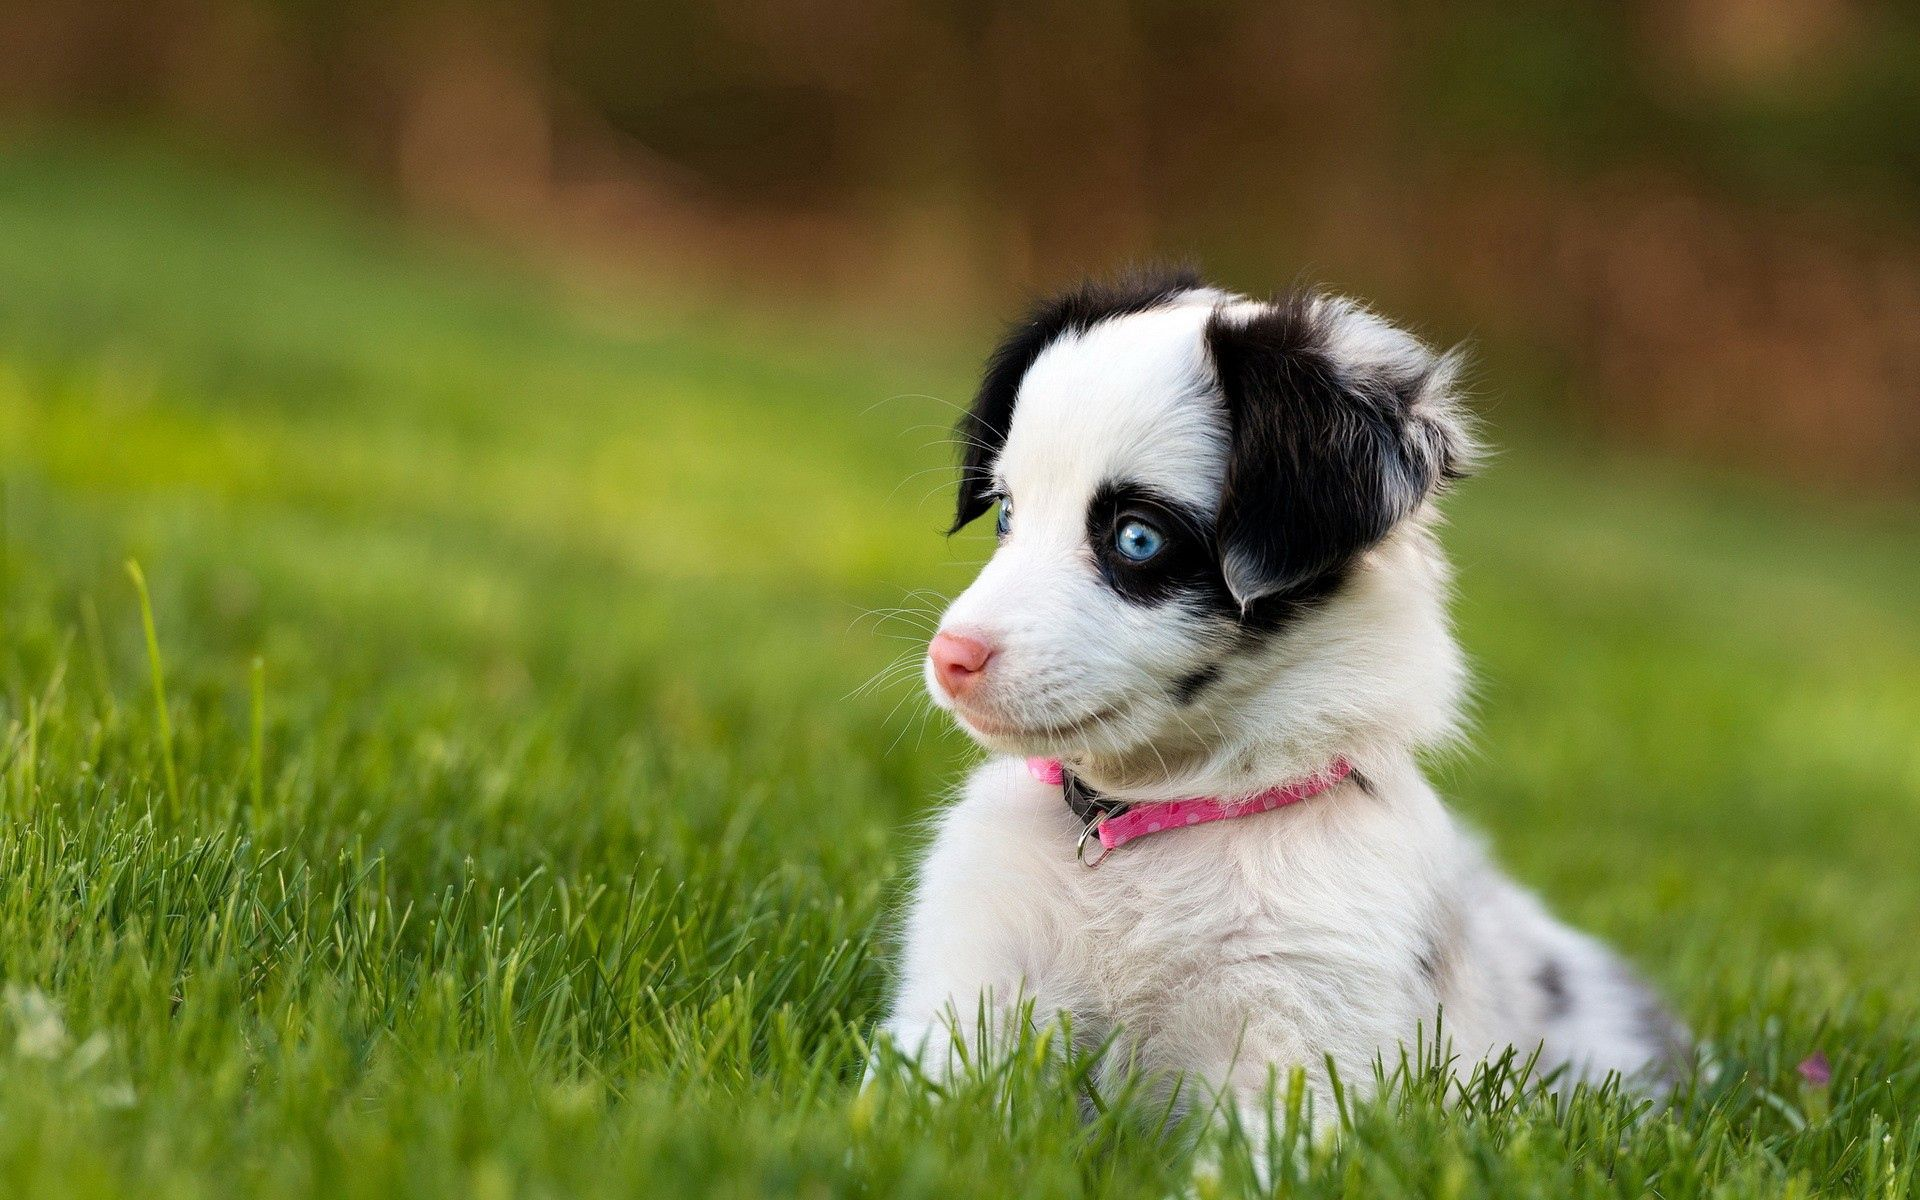 130397 Screensavers and Wallpapers Beautiful for phone. Download Animals, Dog, Beautiful, Sight, Opinion, Puppy, Surprise, Astonishment pictures for free